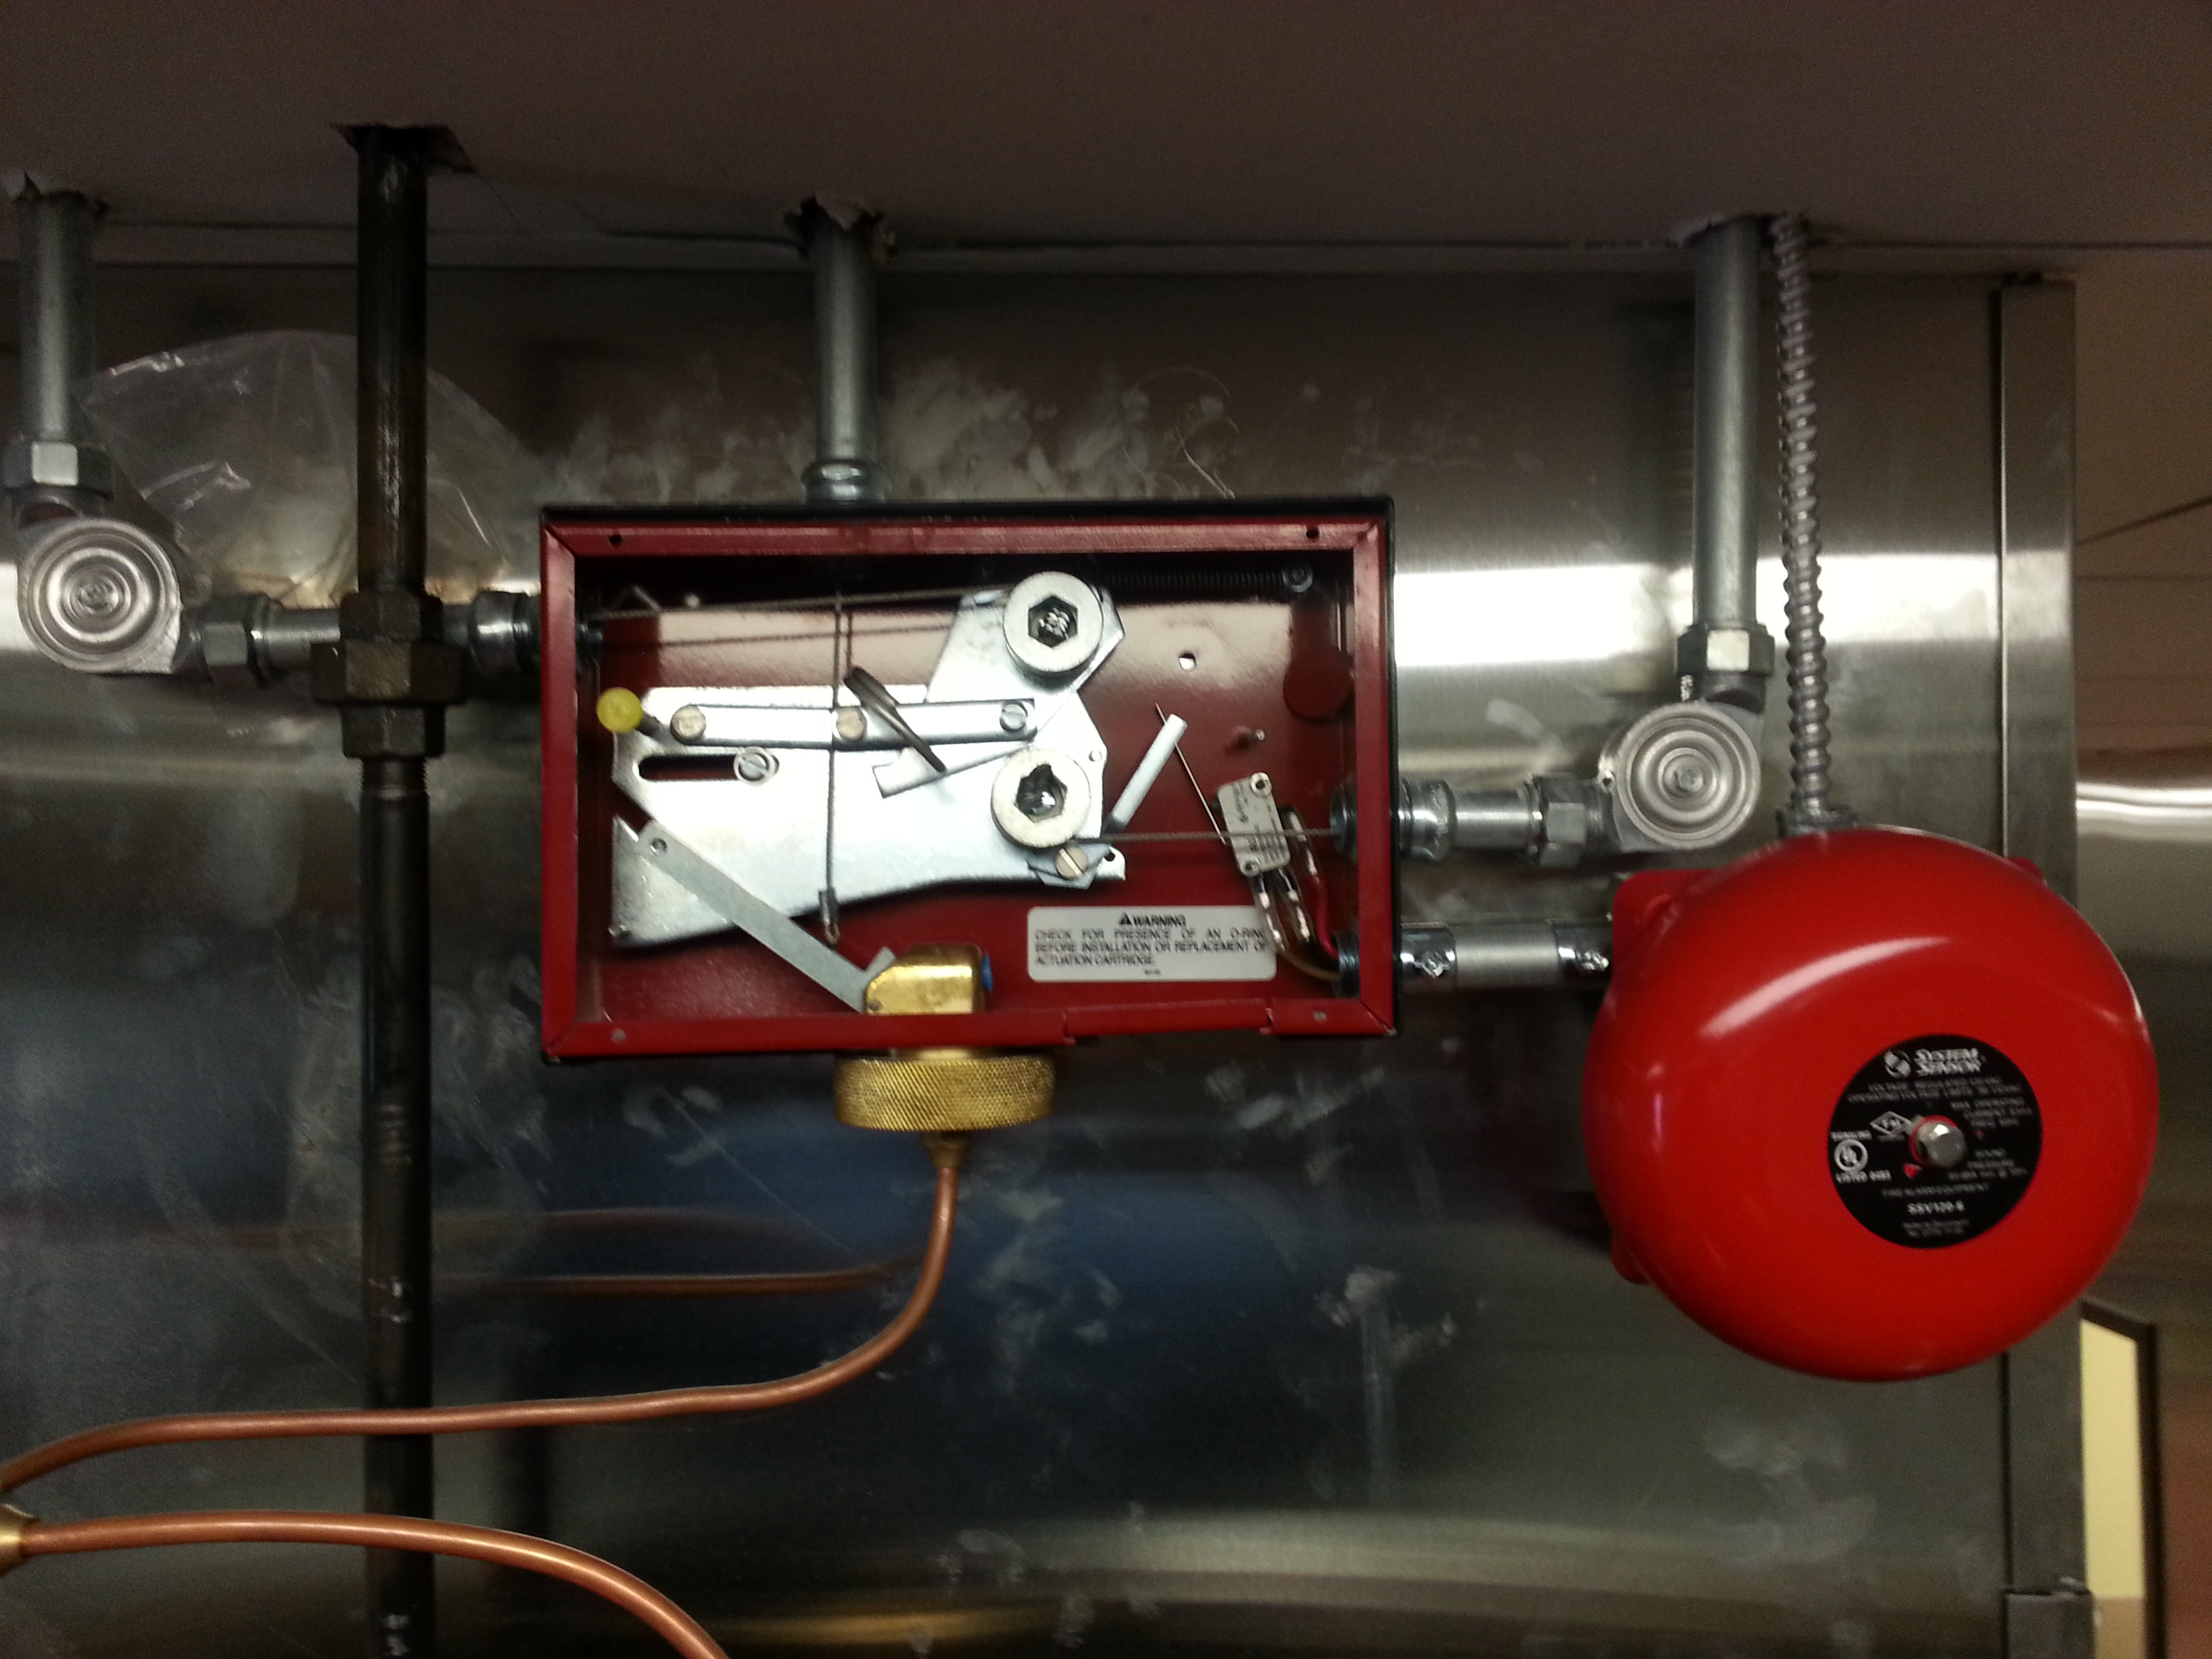 Kitchen Fire Suppression Systems | Dallas Fire Extinguisher